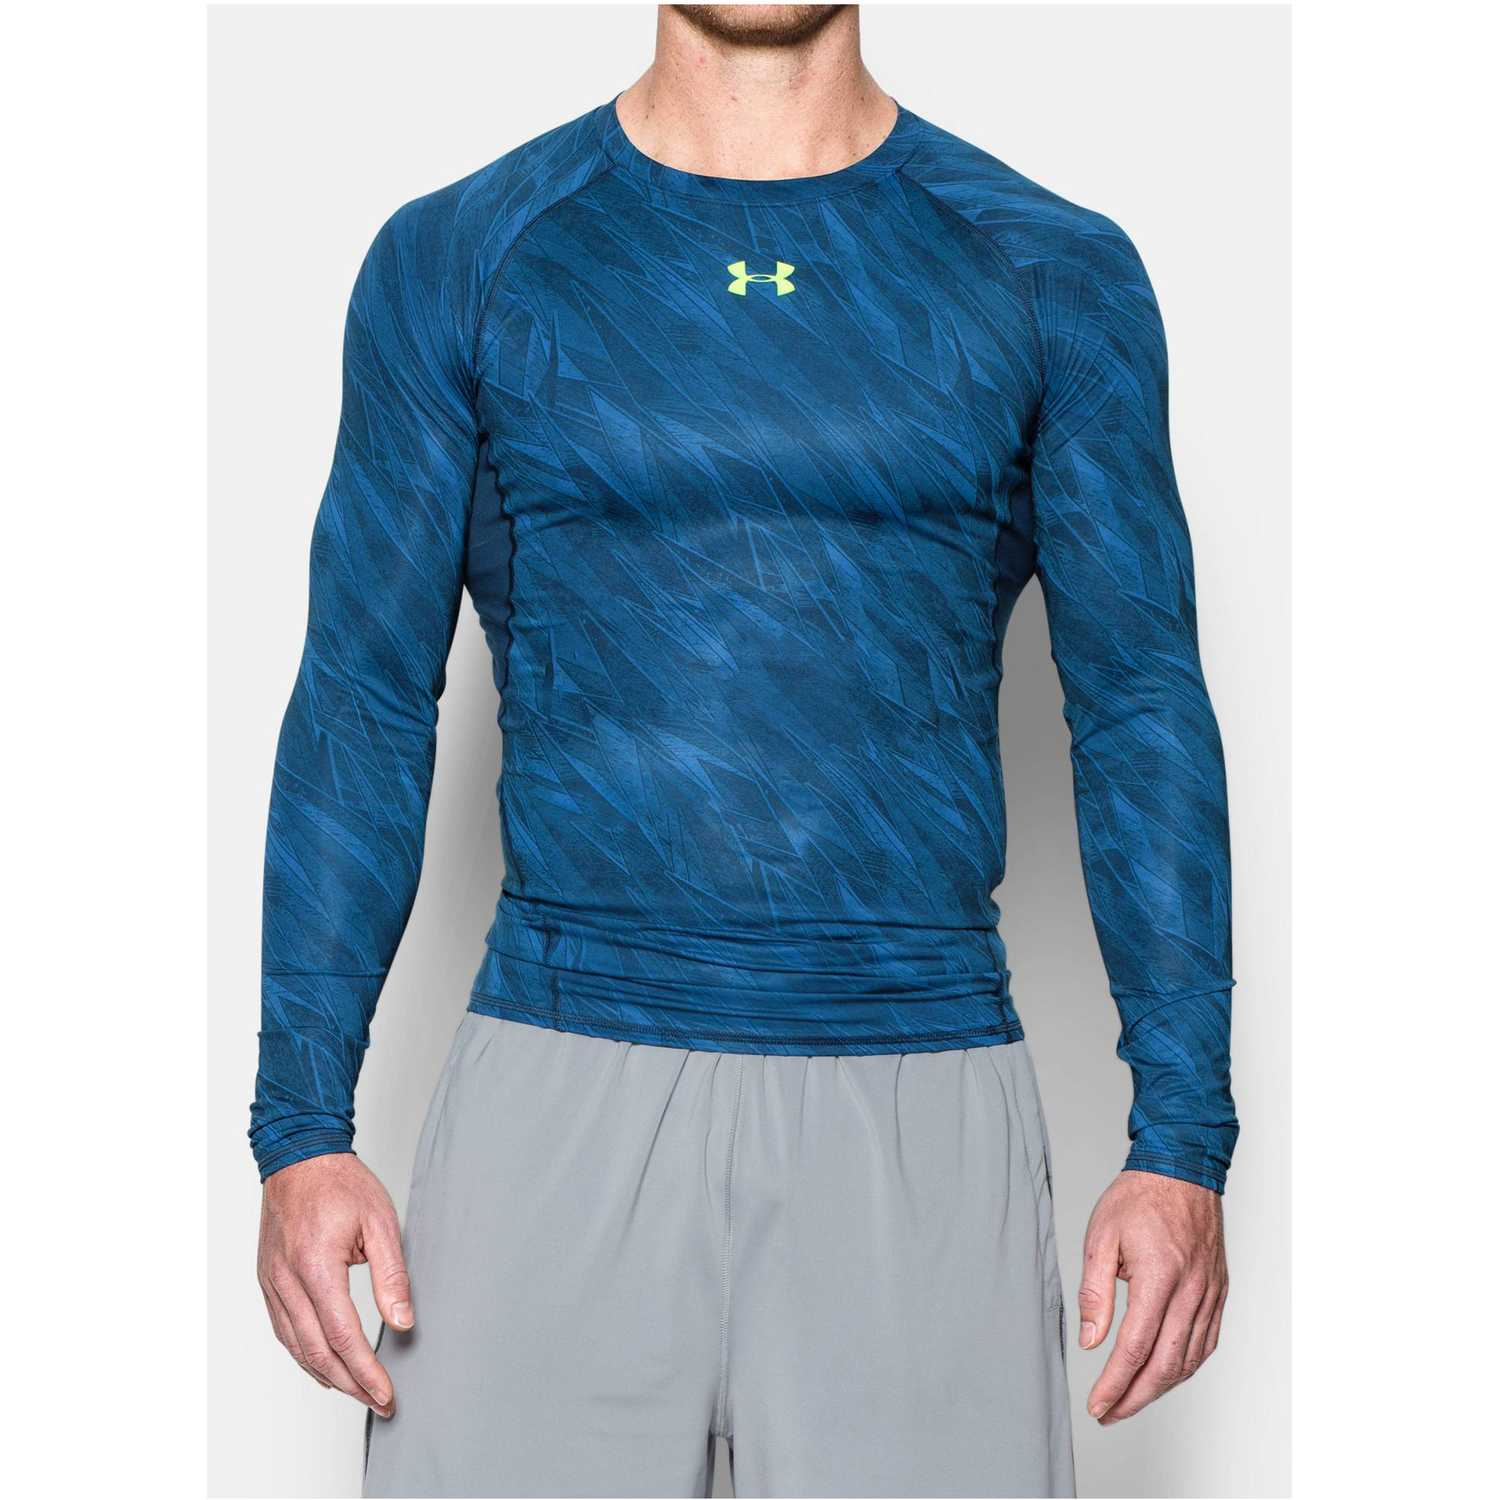 Polo de Hombre Under Armour Azul / Acero armour hg ls comp printed